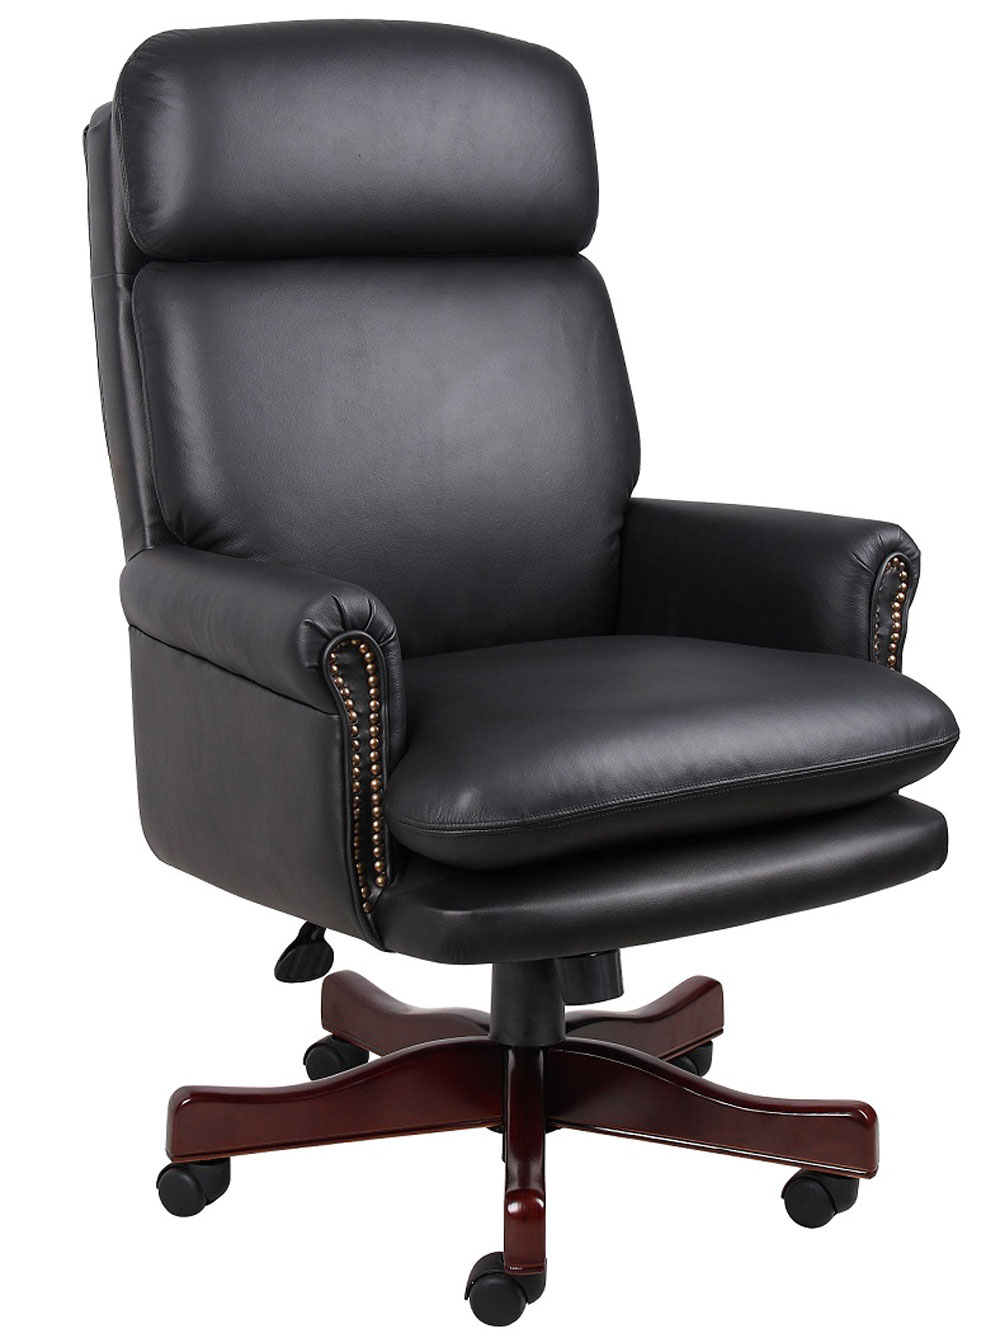 Executive Office Chairs For Office